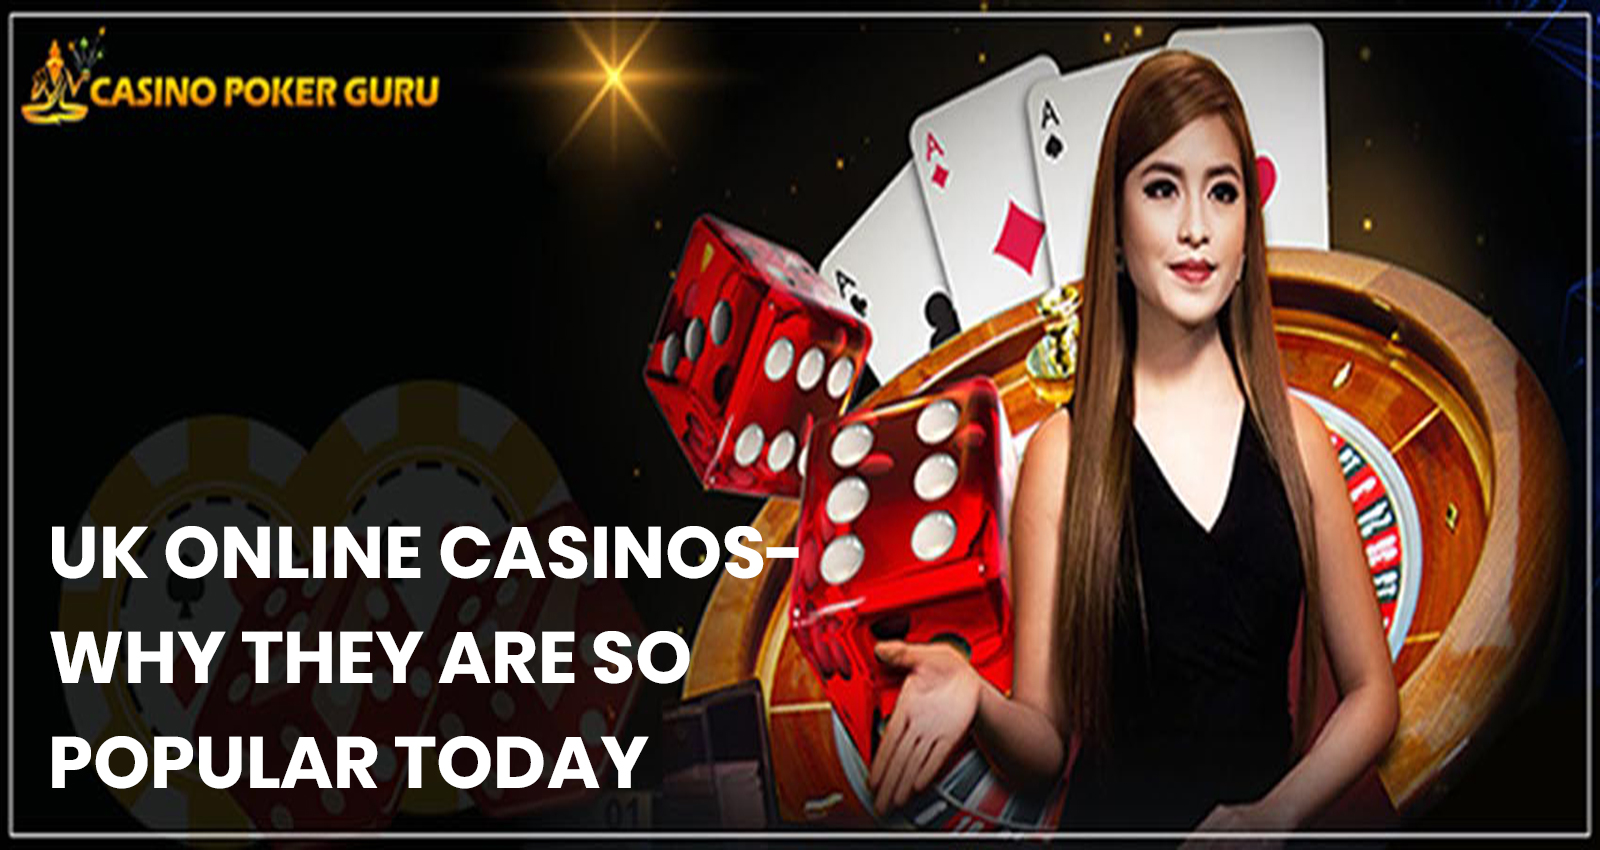 UK Online Casinos—Why They Are So Popular Today